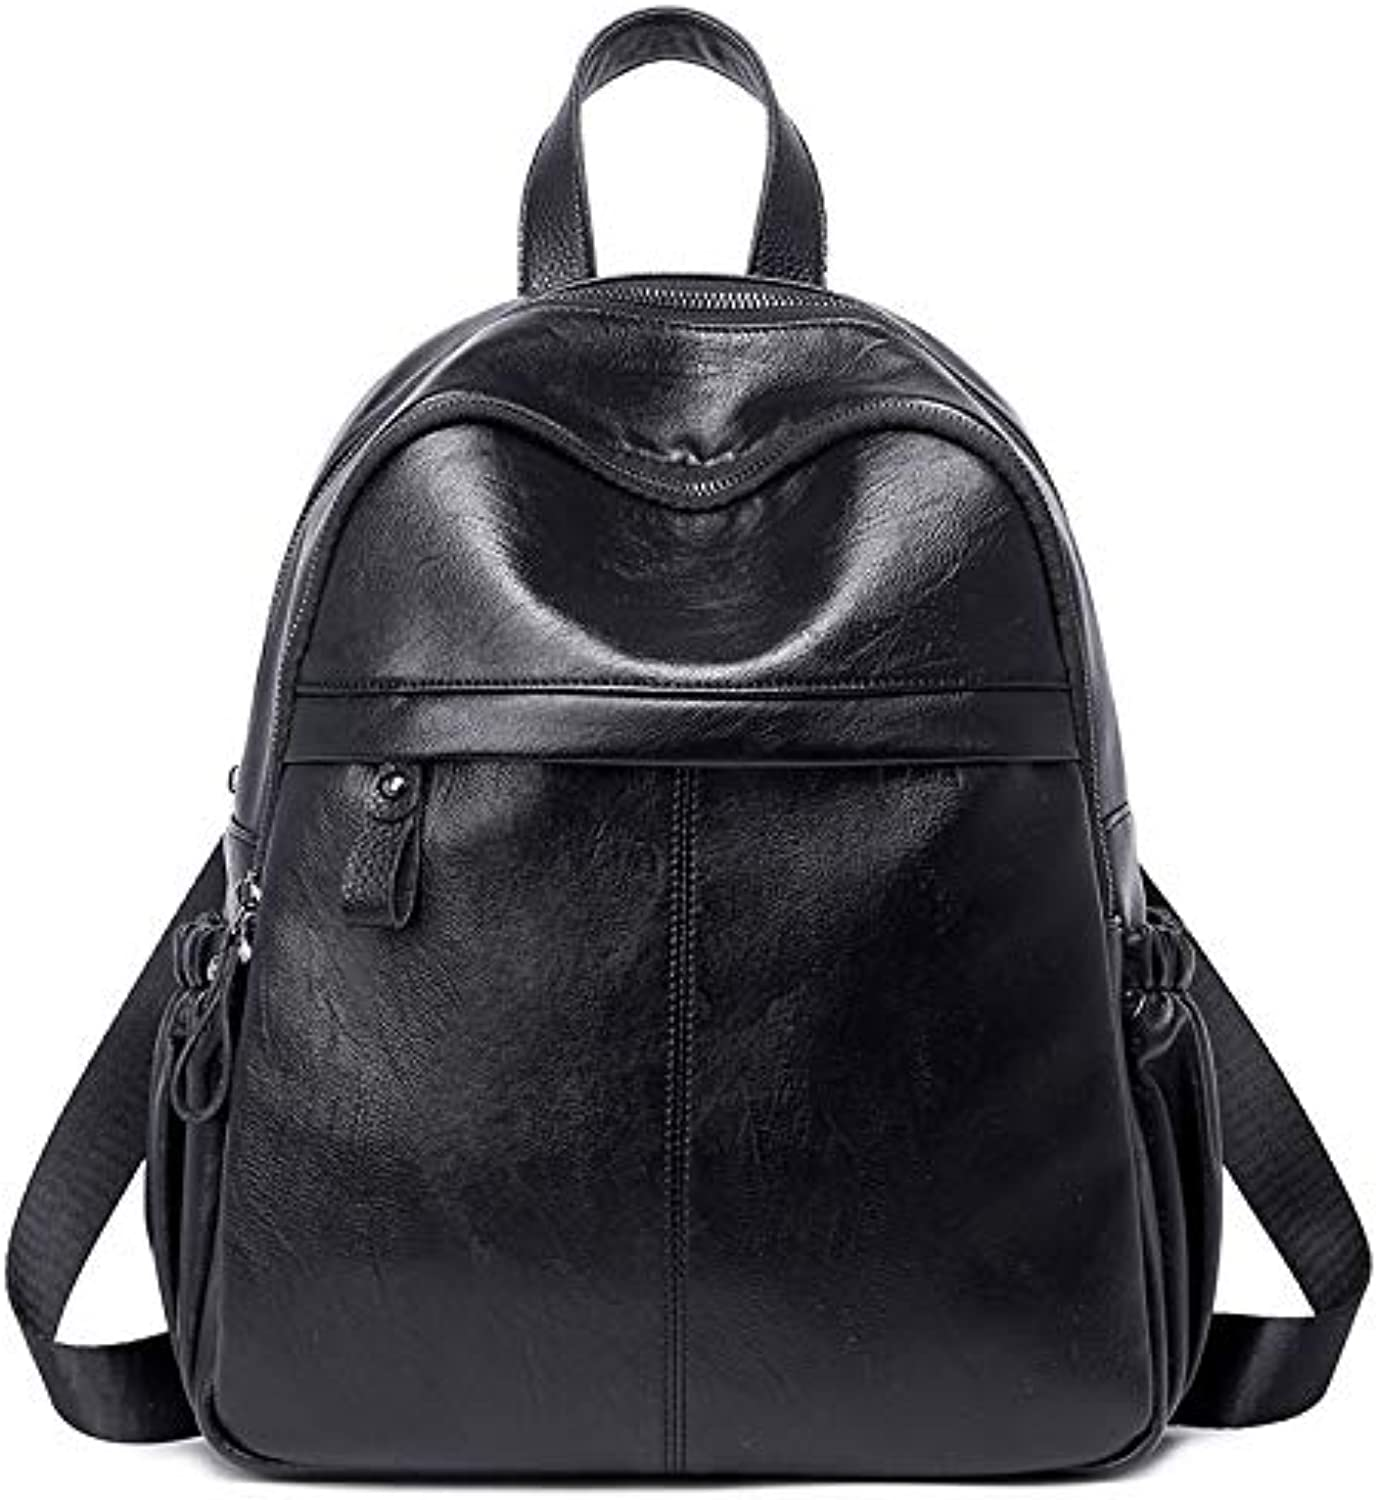 Fashion Wild Large Capacity Casual Soft Leather Backpack Suitable for Travel, Shopping, Dating